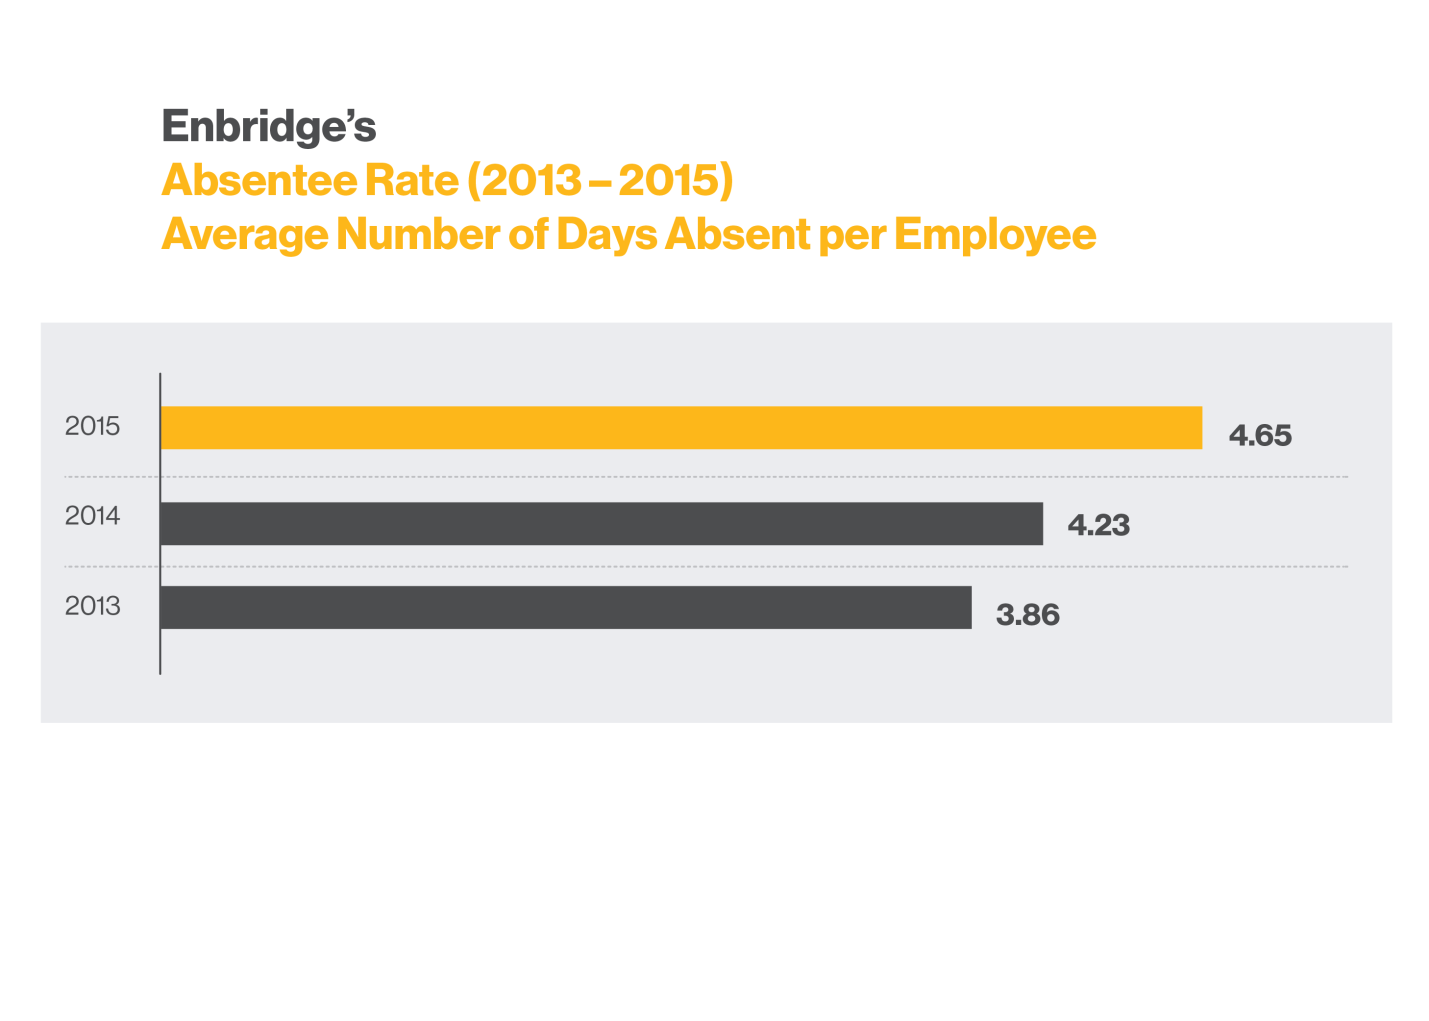 Absentee_Rate_2013-2015_Average_Number_of_Days_Absent_per_Employee